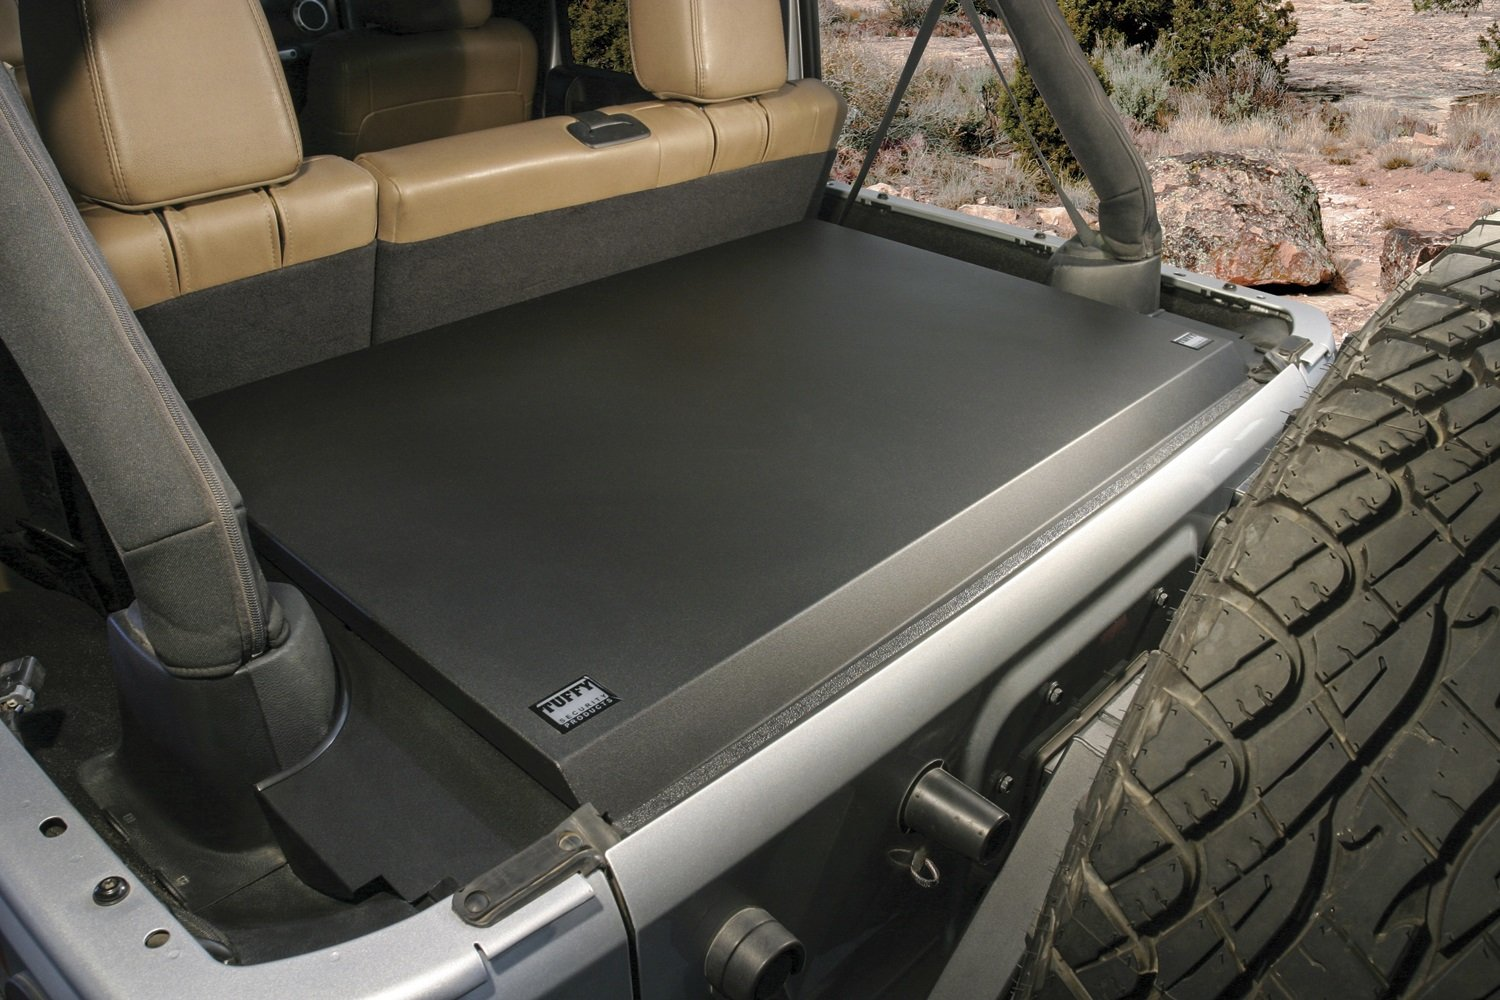 Tuffy 326-01 Jk 2011+ Deluxe Security Deck Enclosure, 01-Black, Us 8256819, 8517445, 9039062, 9079625, Other Patents Pending